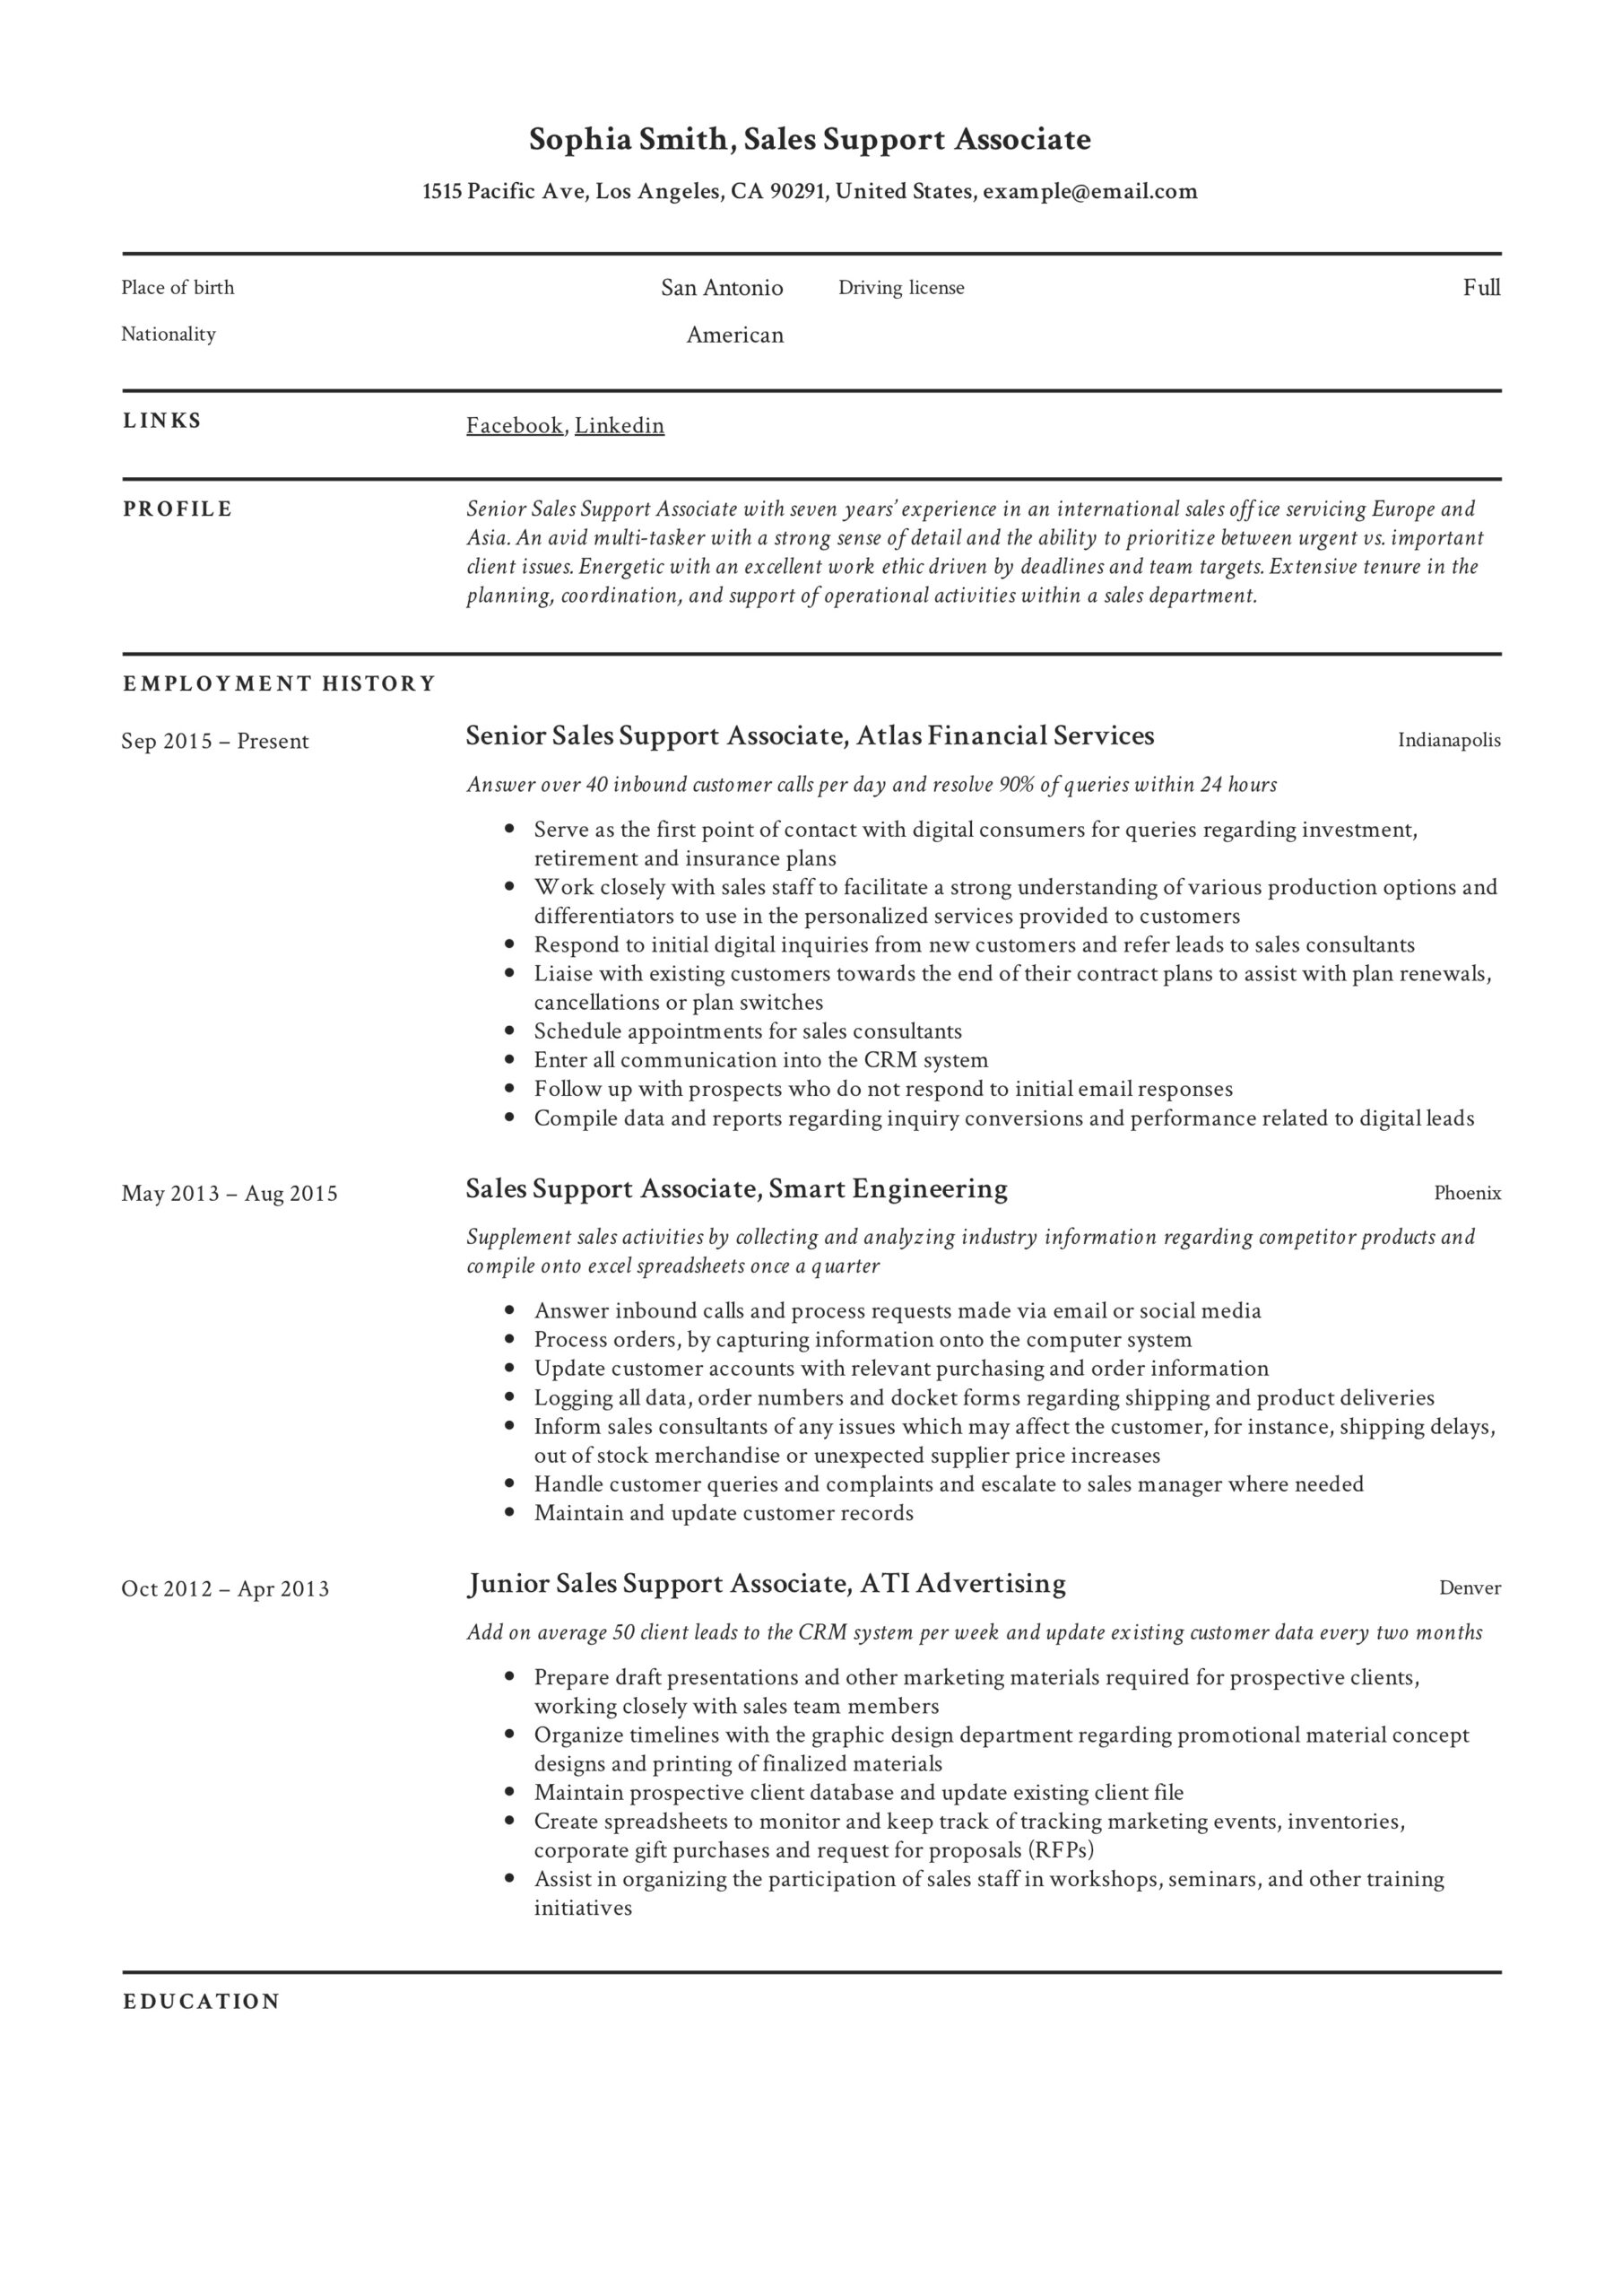 support associate resume guide examples telecommunications keywords example optimal umass Resume Telecommunications Resume Keywords